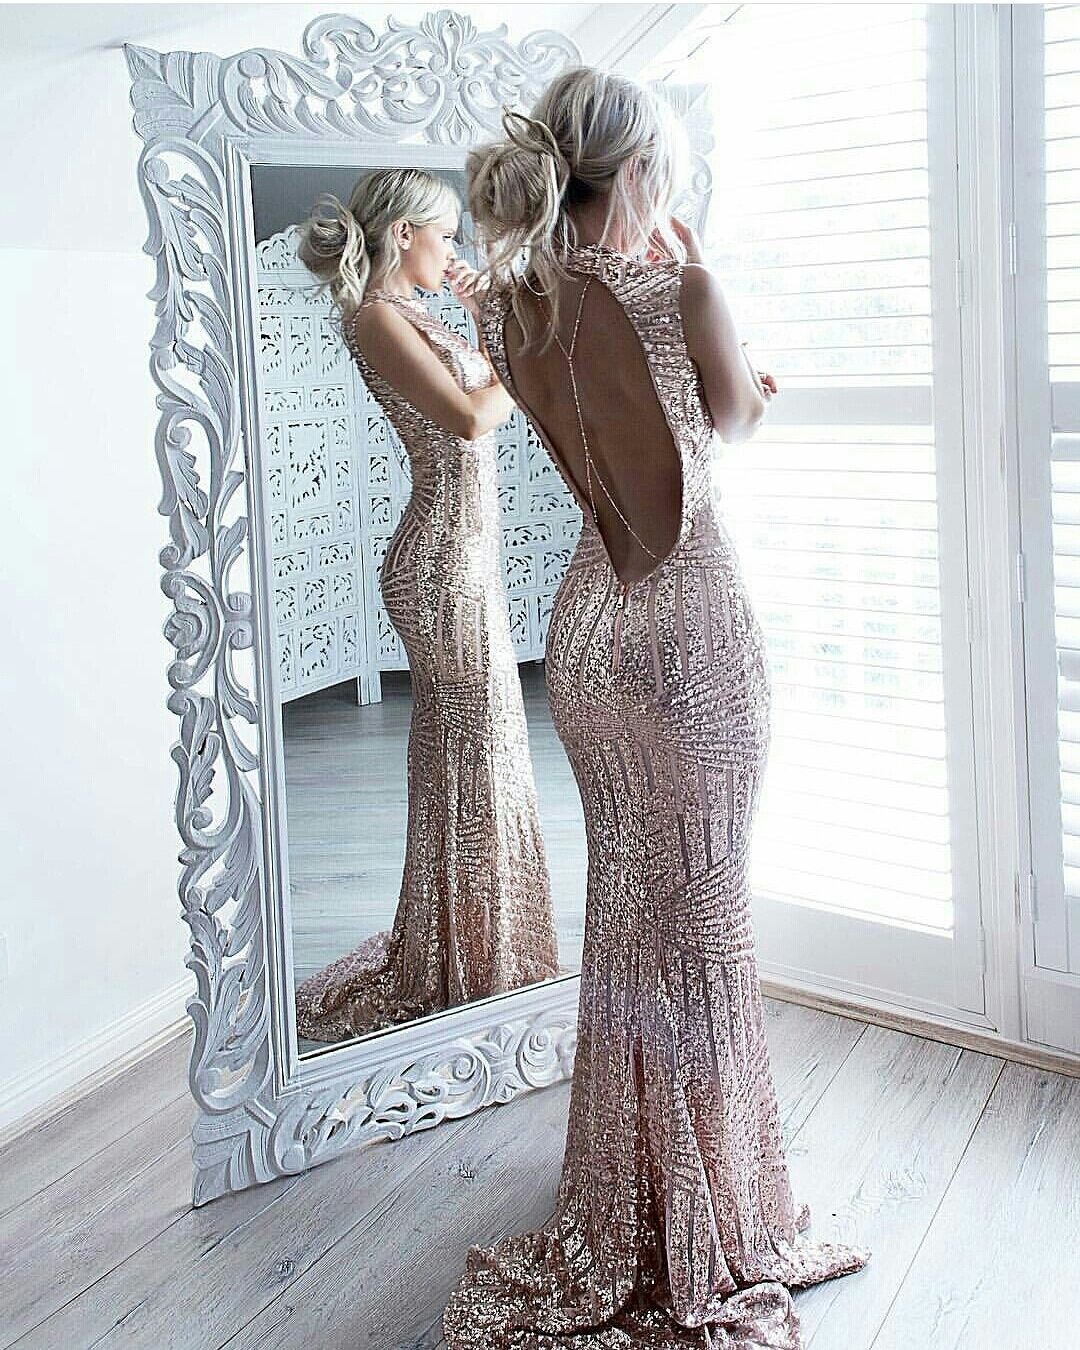 Sequins Sparkling Sexy Sleeveless Sheath Open-Back High-Neck Prom Dress  sold by olesa wedding shop. Shop more products from olesa wedding shop on  Storenvy bc854eafc833